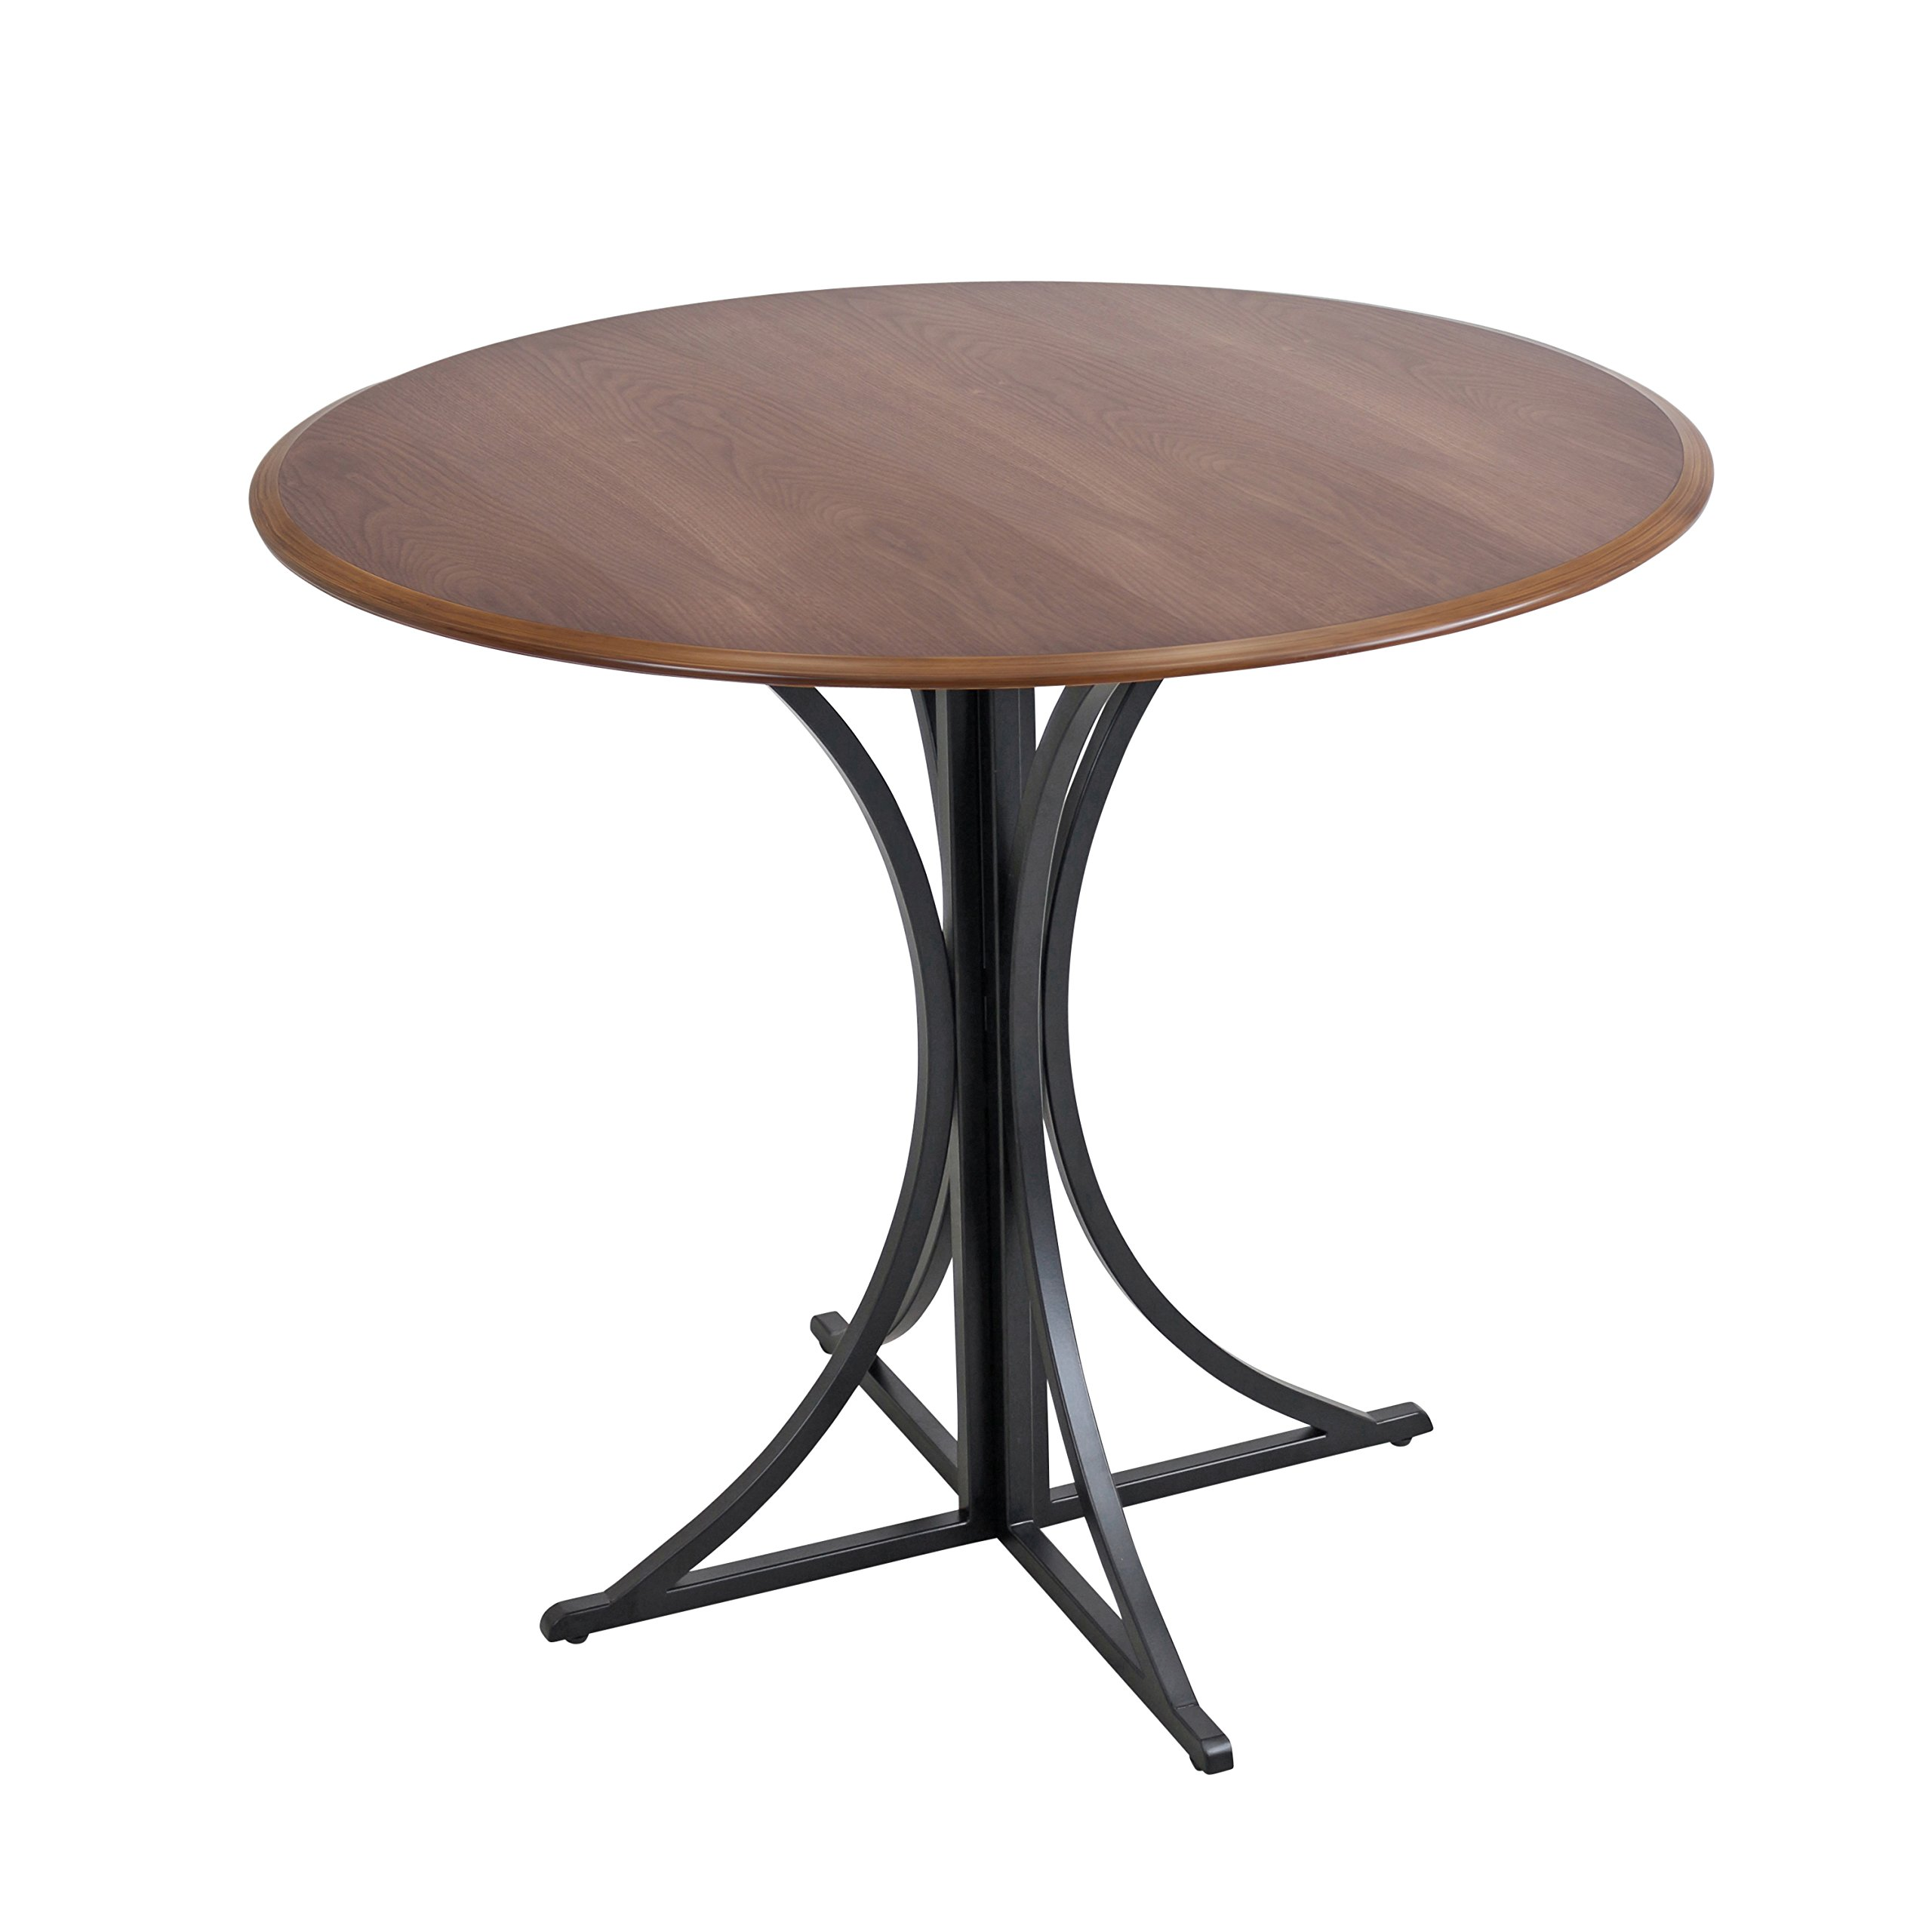 WOYBR DT WL+BK Wood, Metal Boro Dining Table by WOYBR (Image #1)